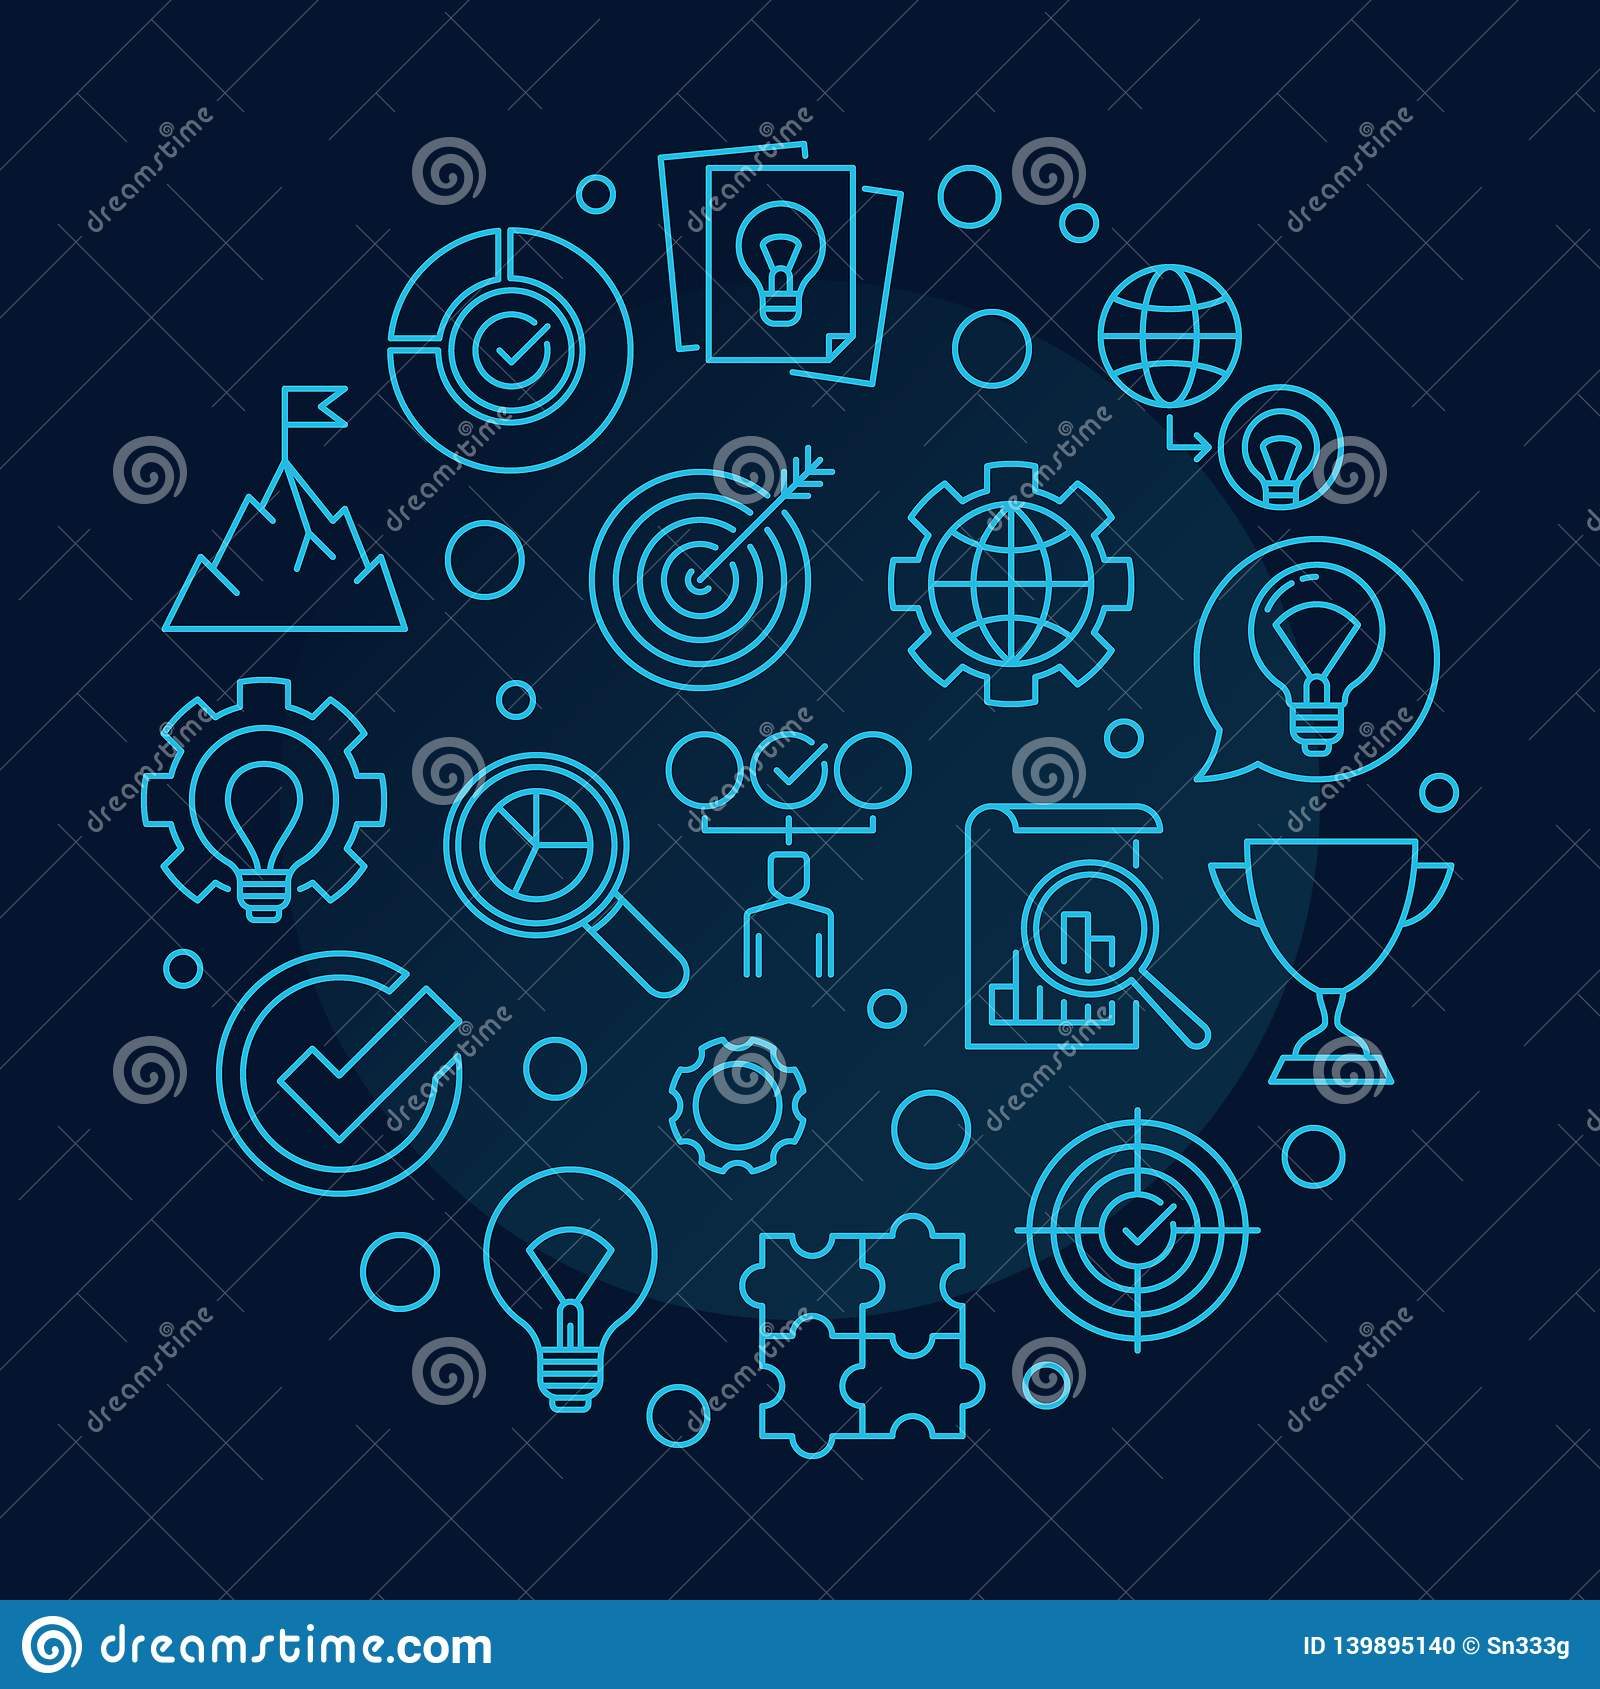 Vector Business Values concept round outline illustration